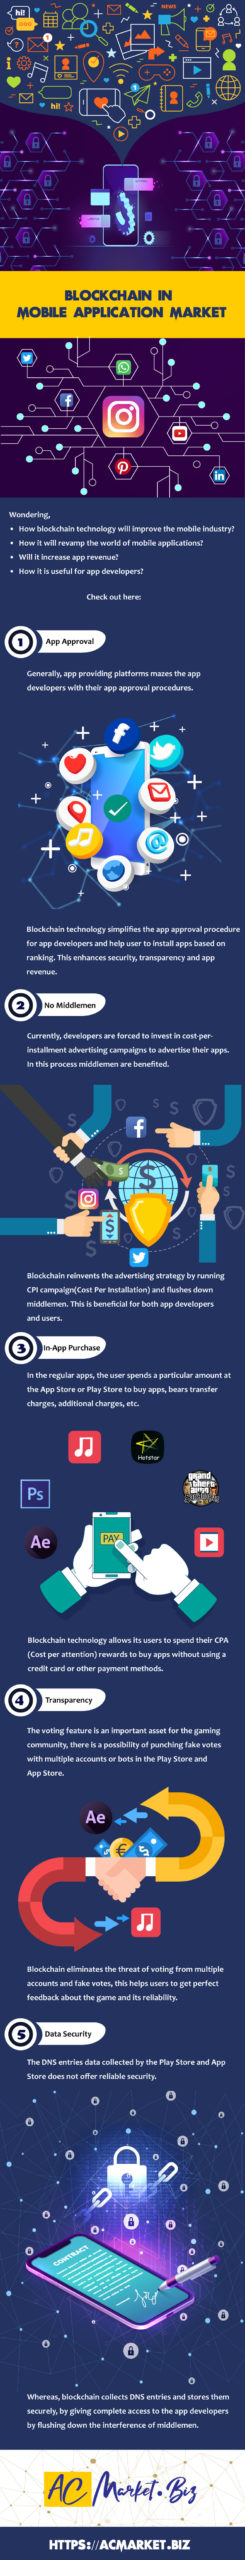 Blockchain Mobile Apps Infographic